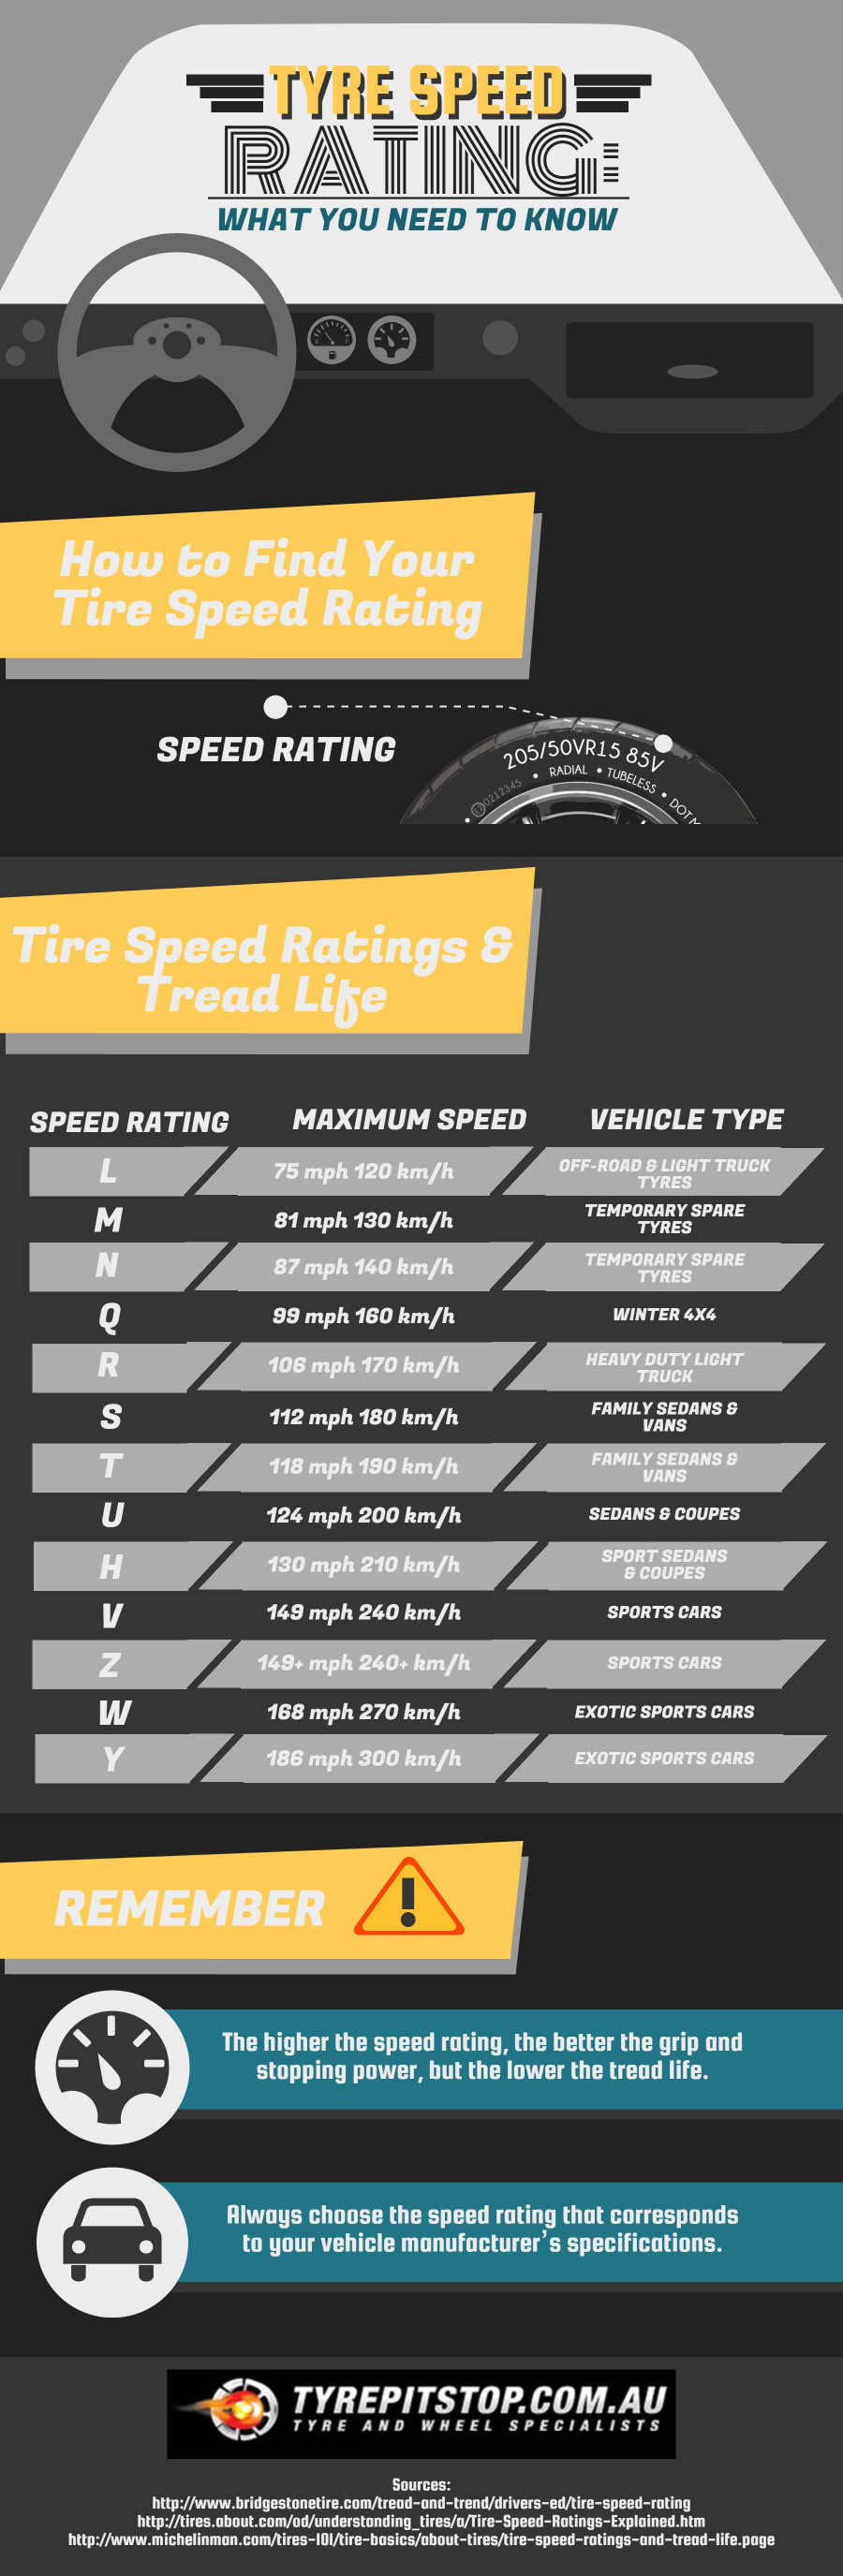 Tyre Speed Rating - What You Need To Know